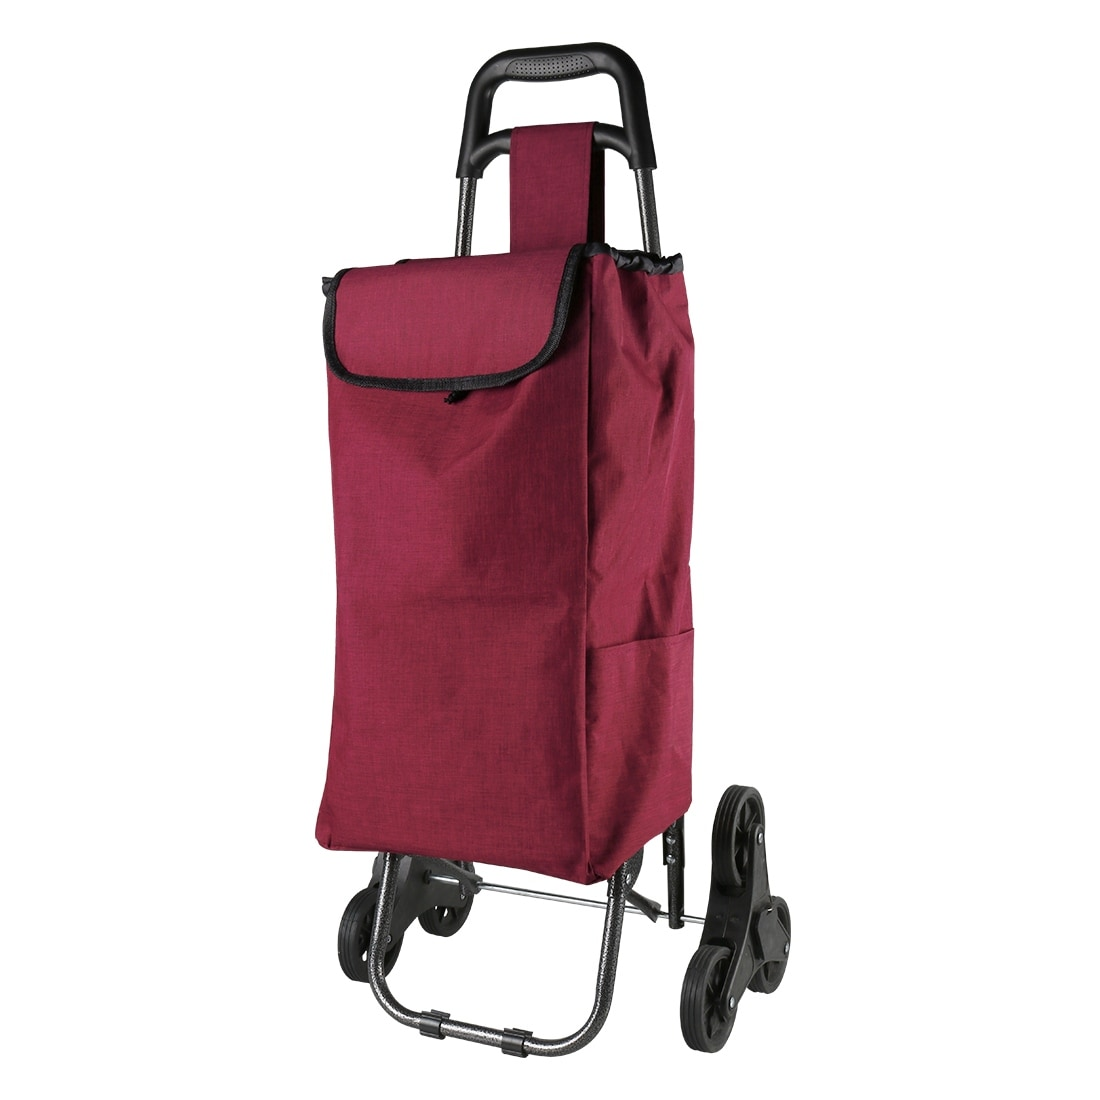 14c69fcc5d7d Folding Shopping Trolley Stair Climbing Cart with Bag for Grocery Laundry  Utility Cart Pink